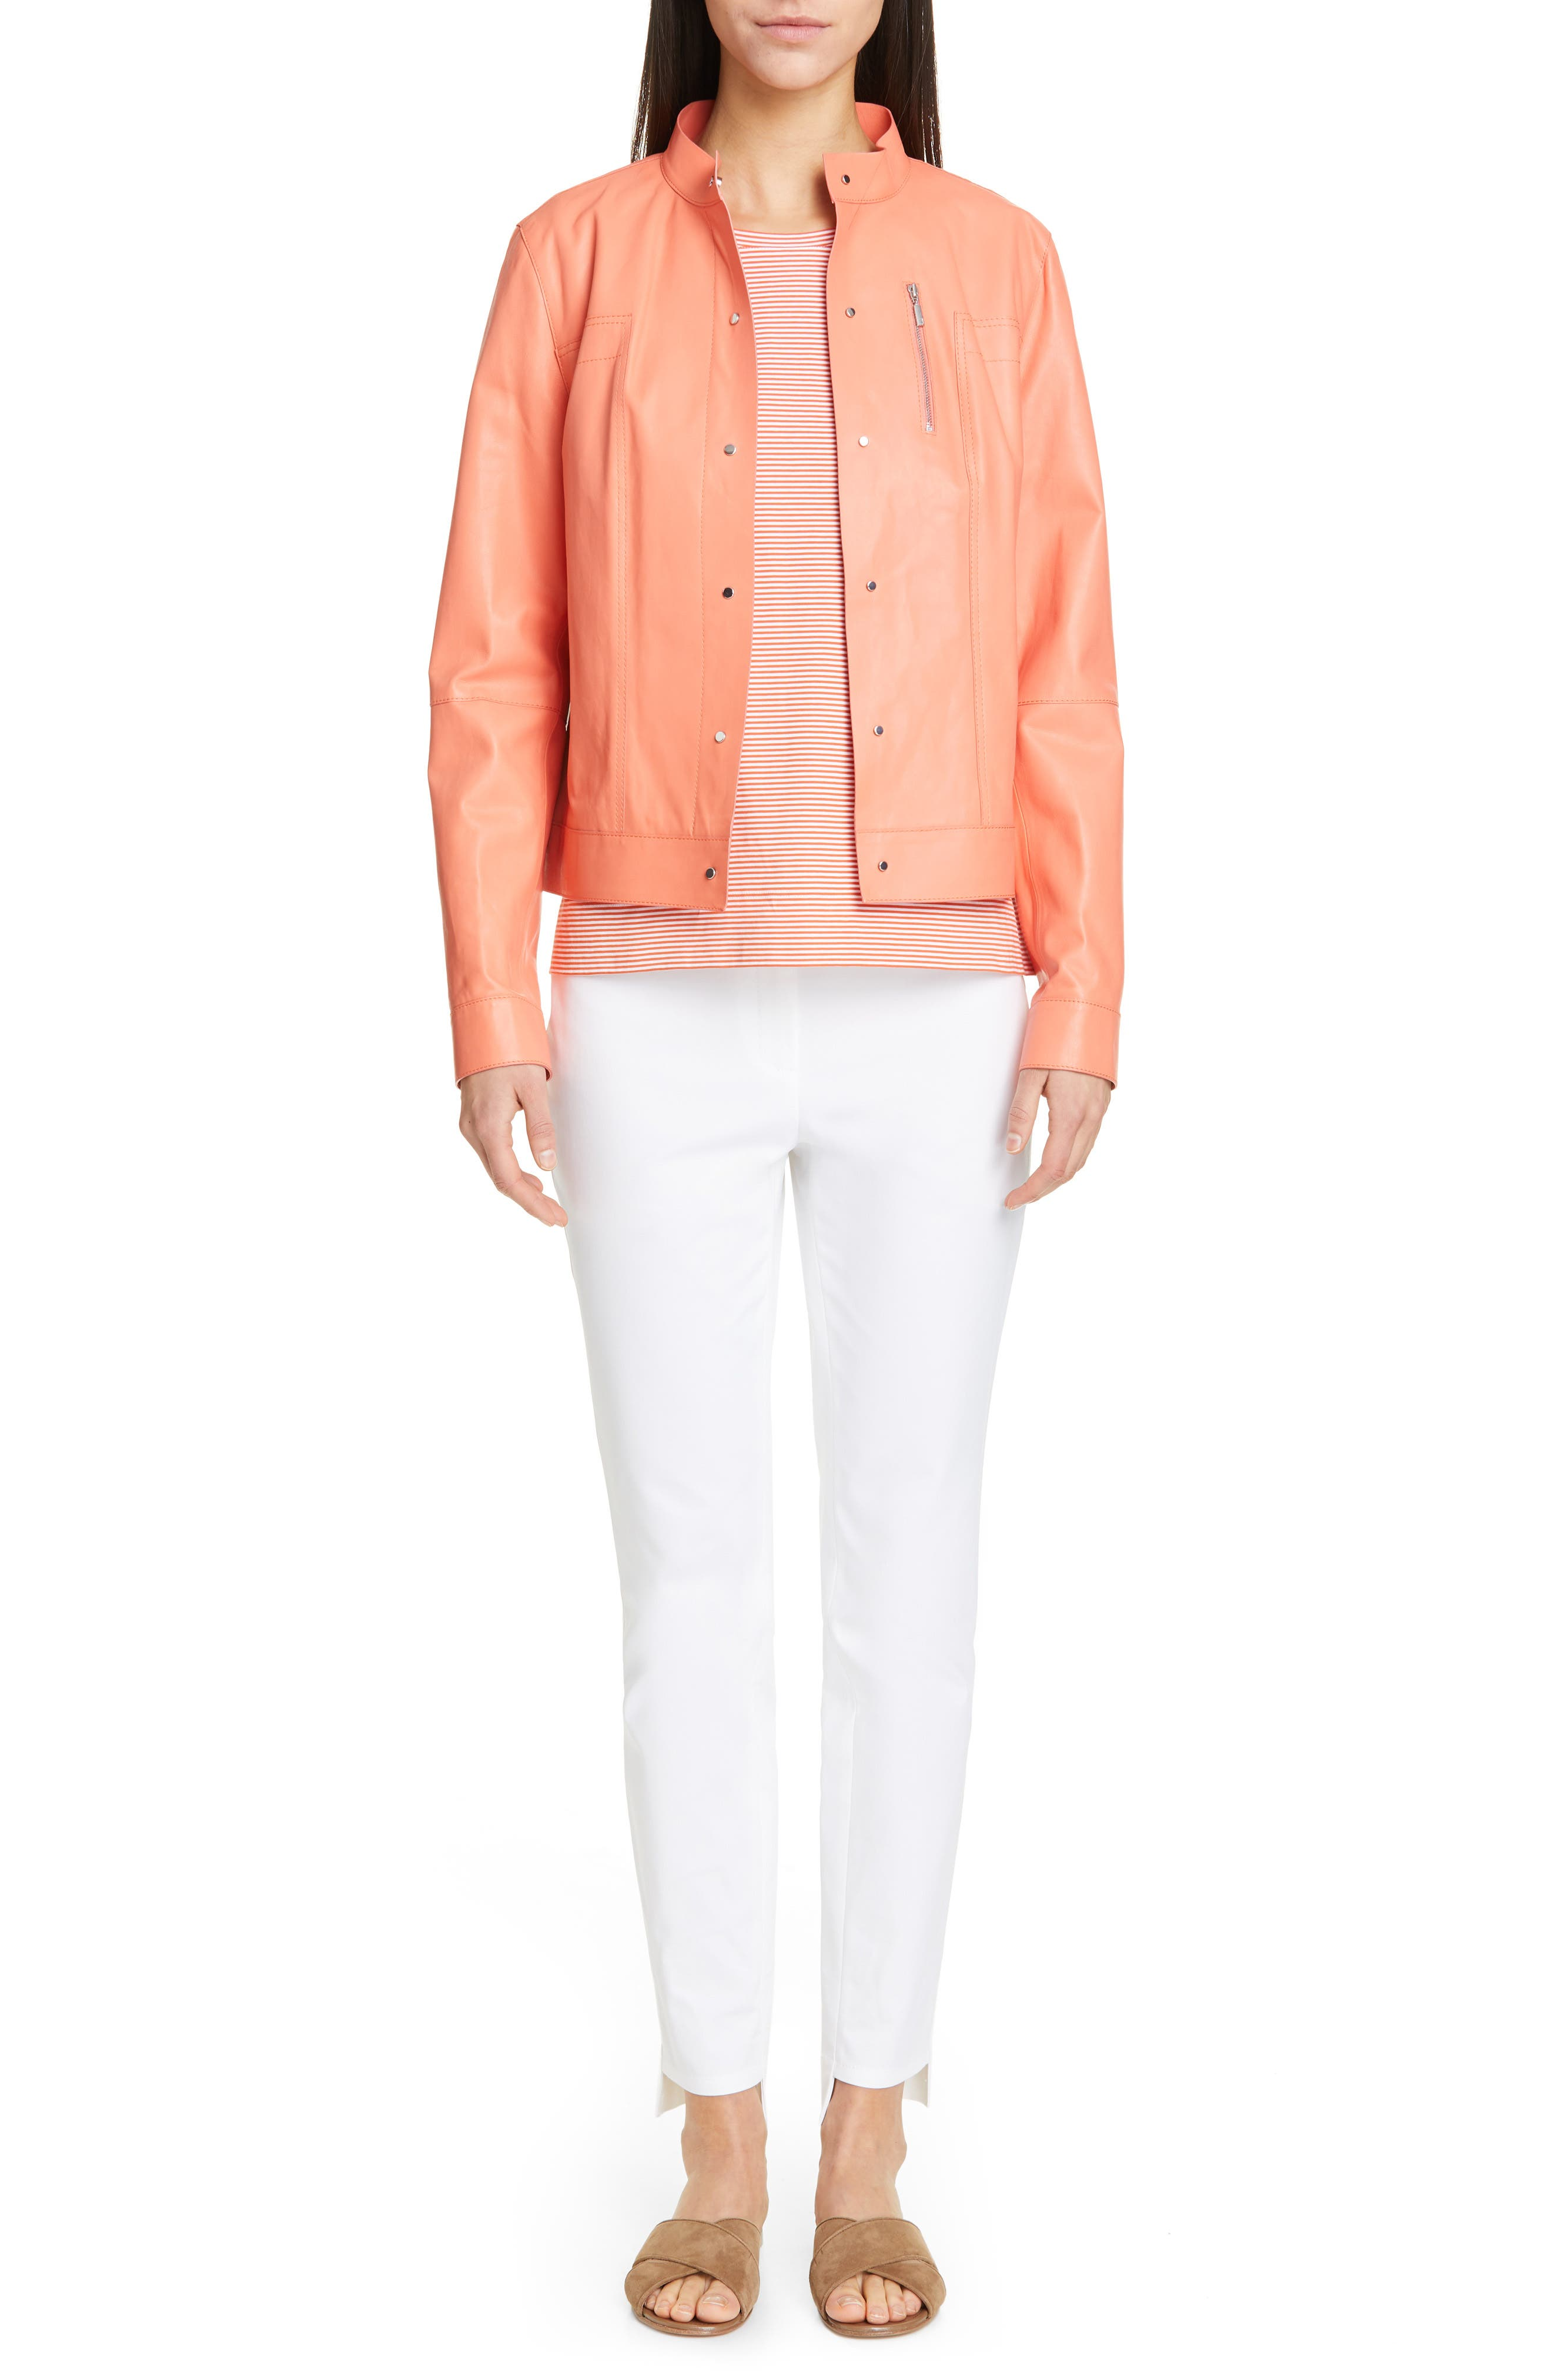 LAFAYETTE 148 NEW YORK, Galicia Leather Jacket, Alternate thumbnail 7, color, PEACH ROSE